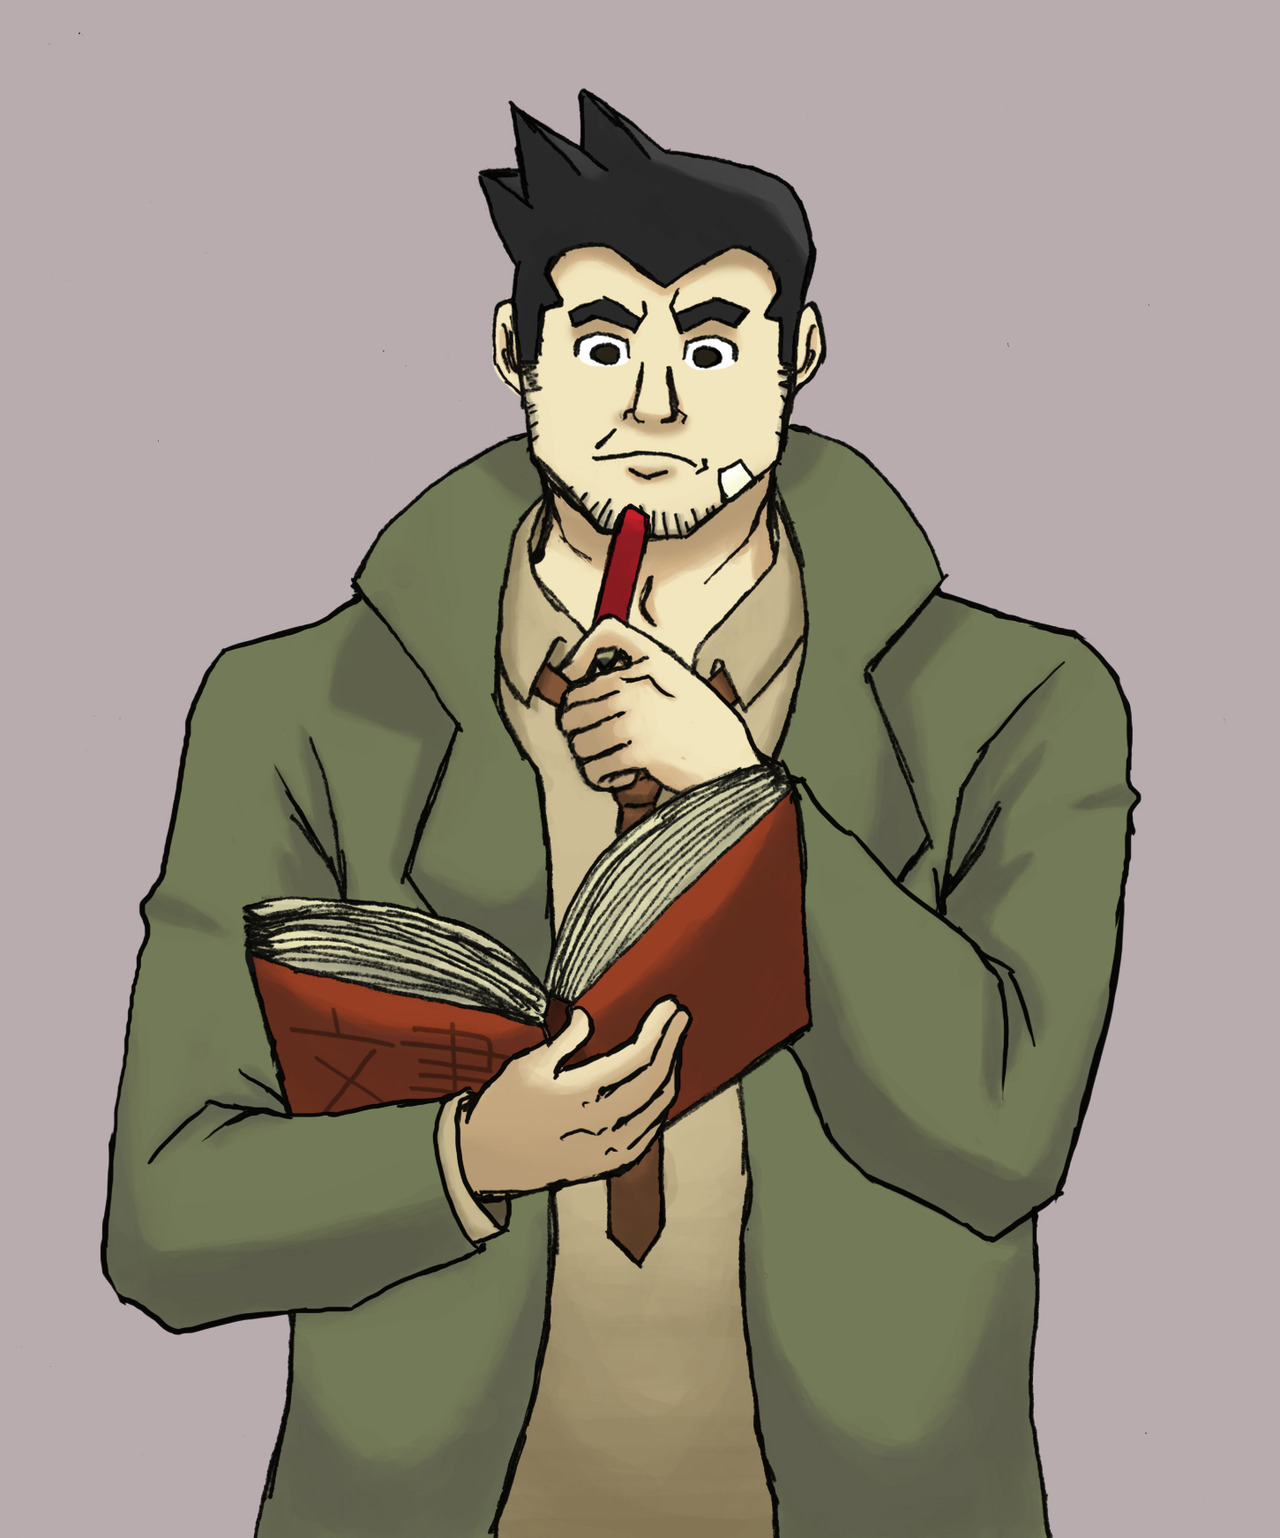 So, you know how Gumshoe always has a pencil on his ear? I was thinking and made a dumb headcanon where he feels really bad for being behind so much on all the cases and stuff, so he writes down everything he can to keep up to speed, but ultimately he ends up forgetting anyway so it doesn't help him much… but at least he tries! He just wants to be helpful and not feel bad when people call him dumb. 'Cause he's not. He tries very hard!!! sighhhhhh look at me blabbing about headcanons no one cares about HAH I came up with a bunch of other headcanons while coloring this but that's because I'm done. ALSO big 'ol thanks to Cafechan for coaching me with colors and also fixing the arms. I'm a babby and can't art. I need to be babysit.